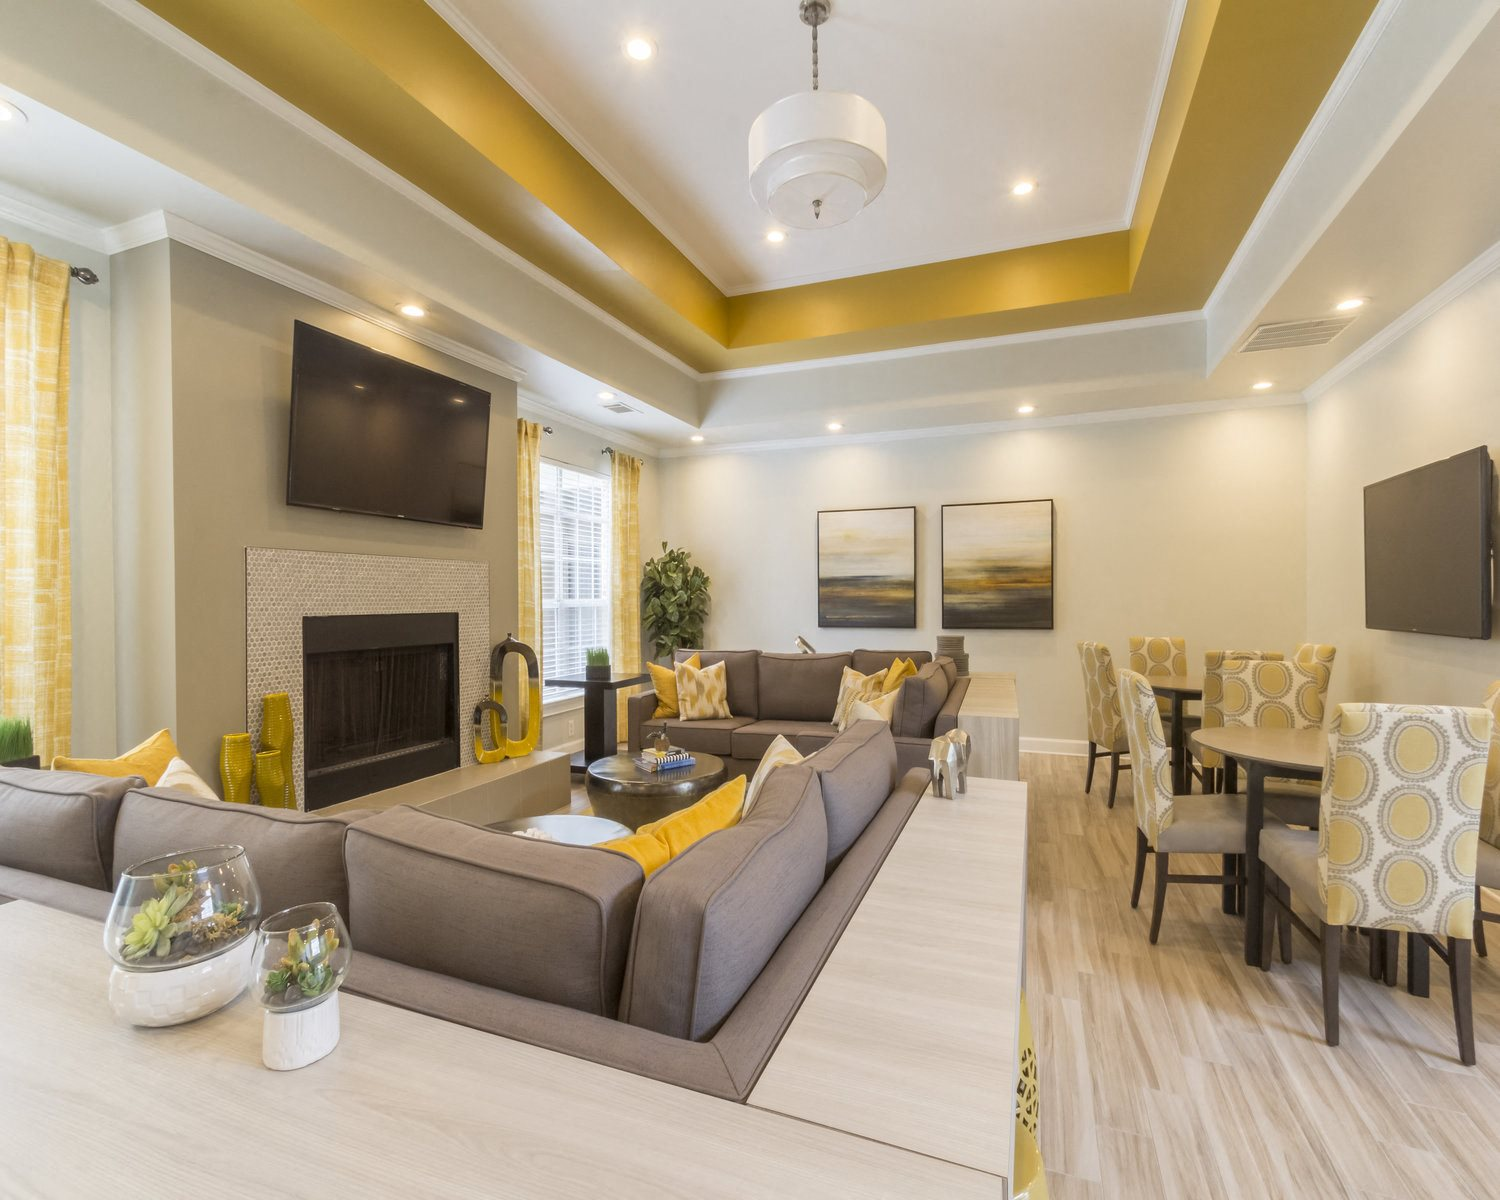 ewly Renovated Clubhouse at Gwinnett Pointe Apartments, 30093